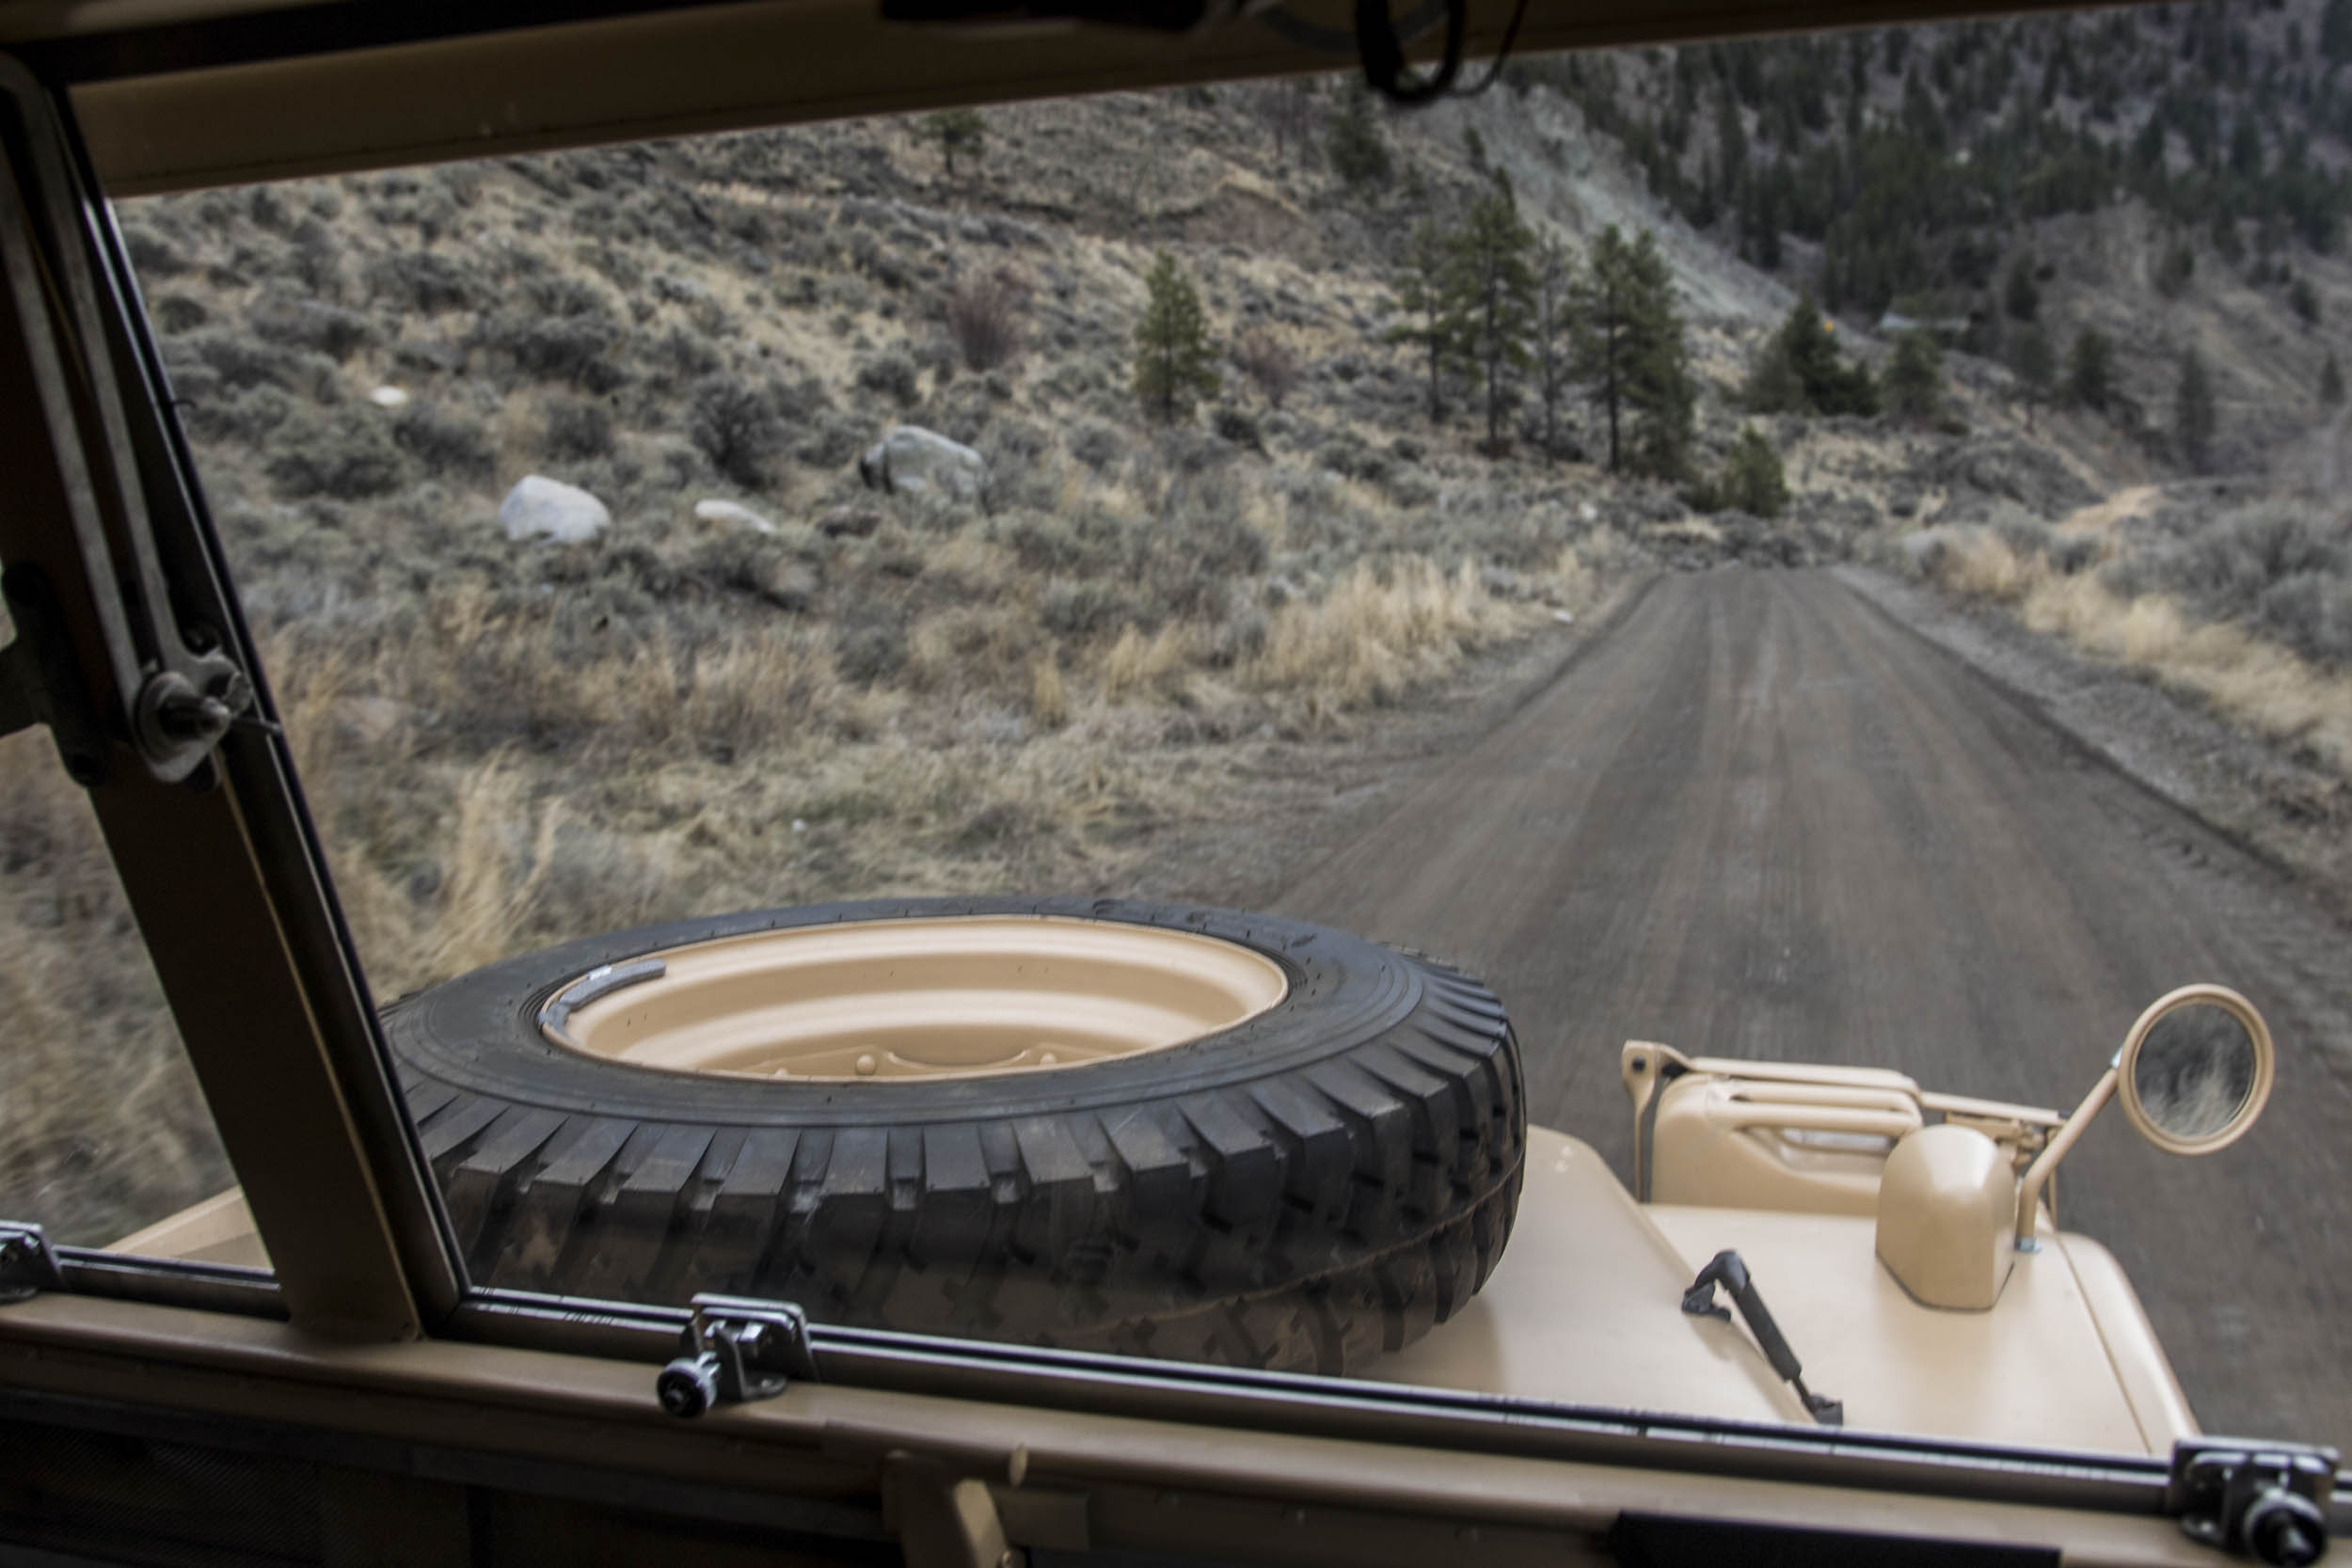 view from the passenger seat of the 1957 Land Rover the Grizzly Torque